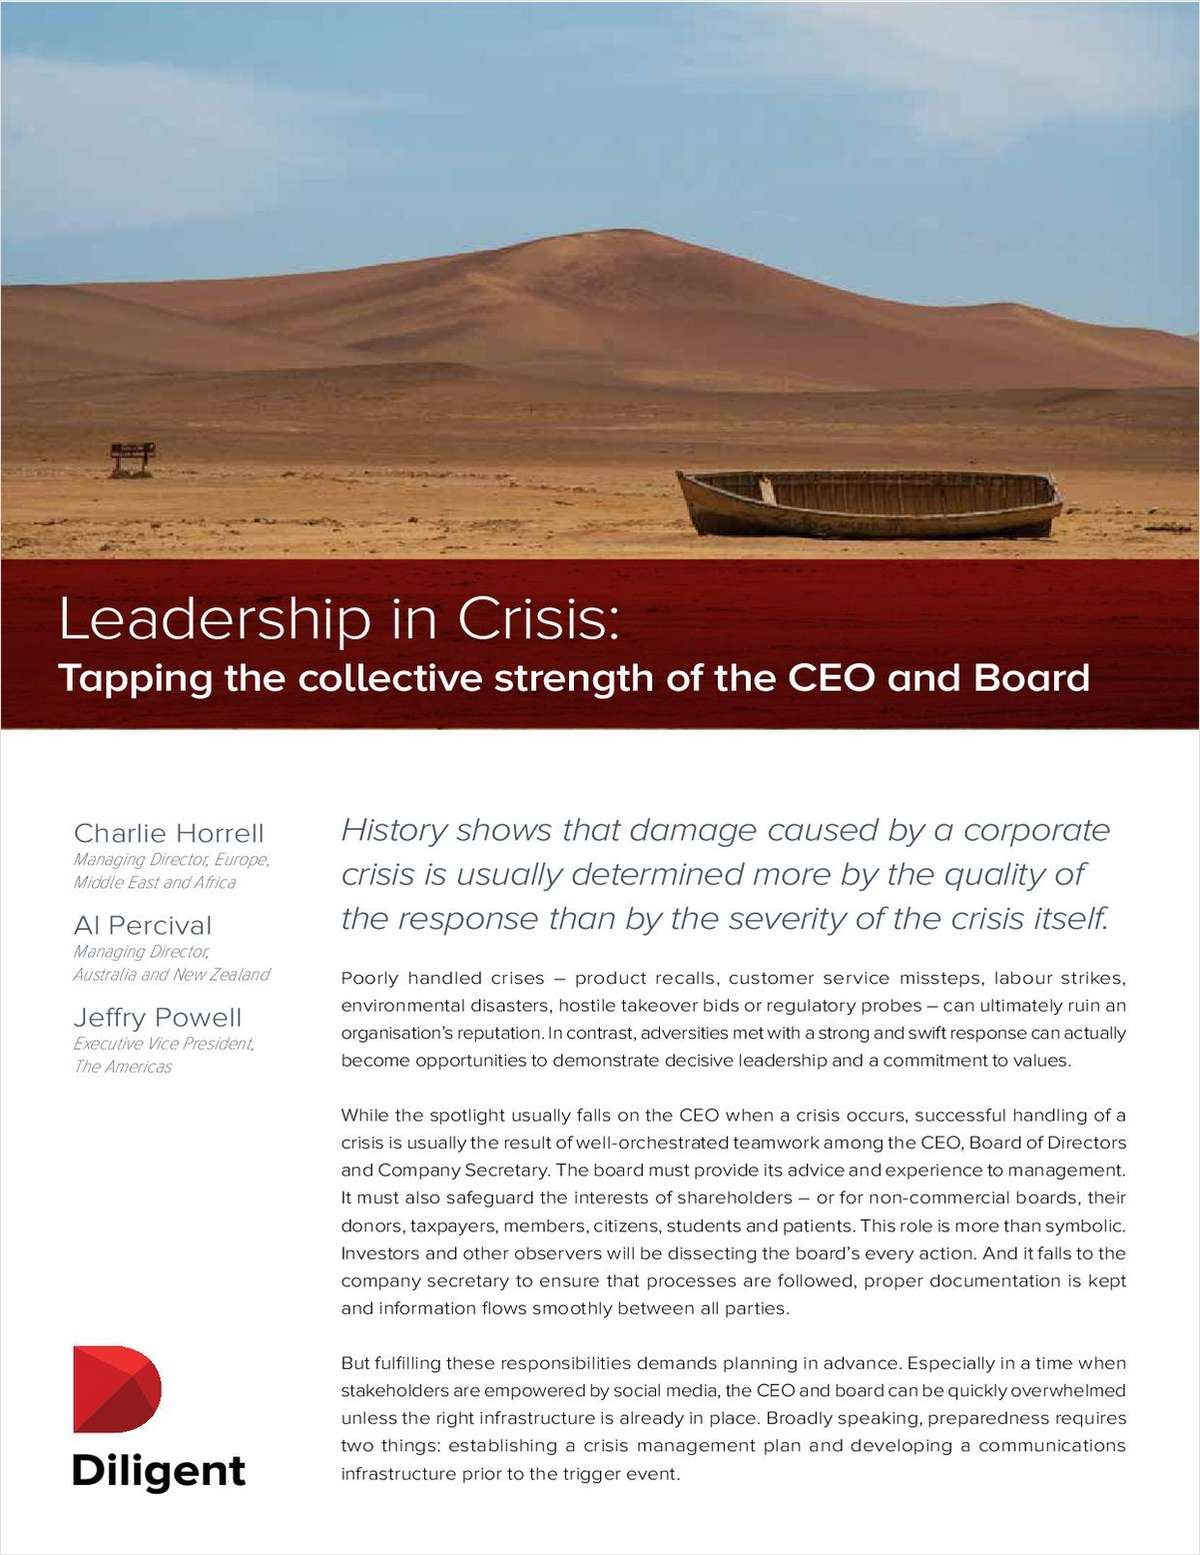 Leadership in Crisis: Tapping the Collective Strength of the CEO and Board